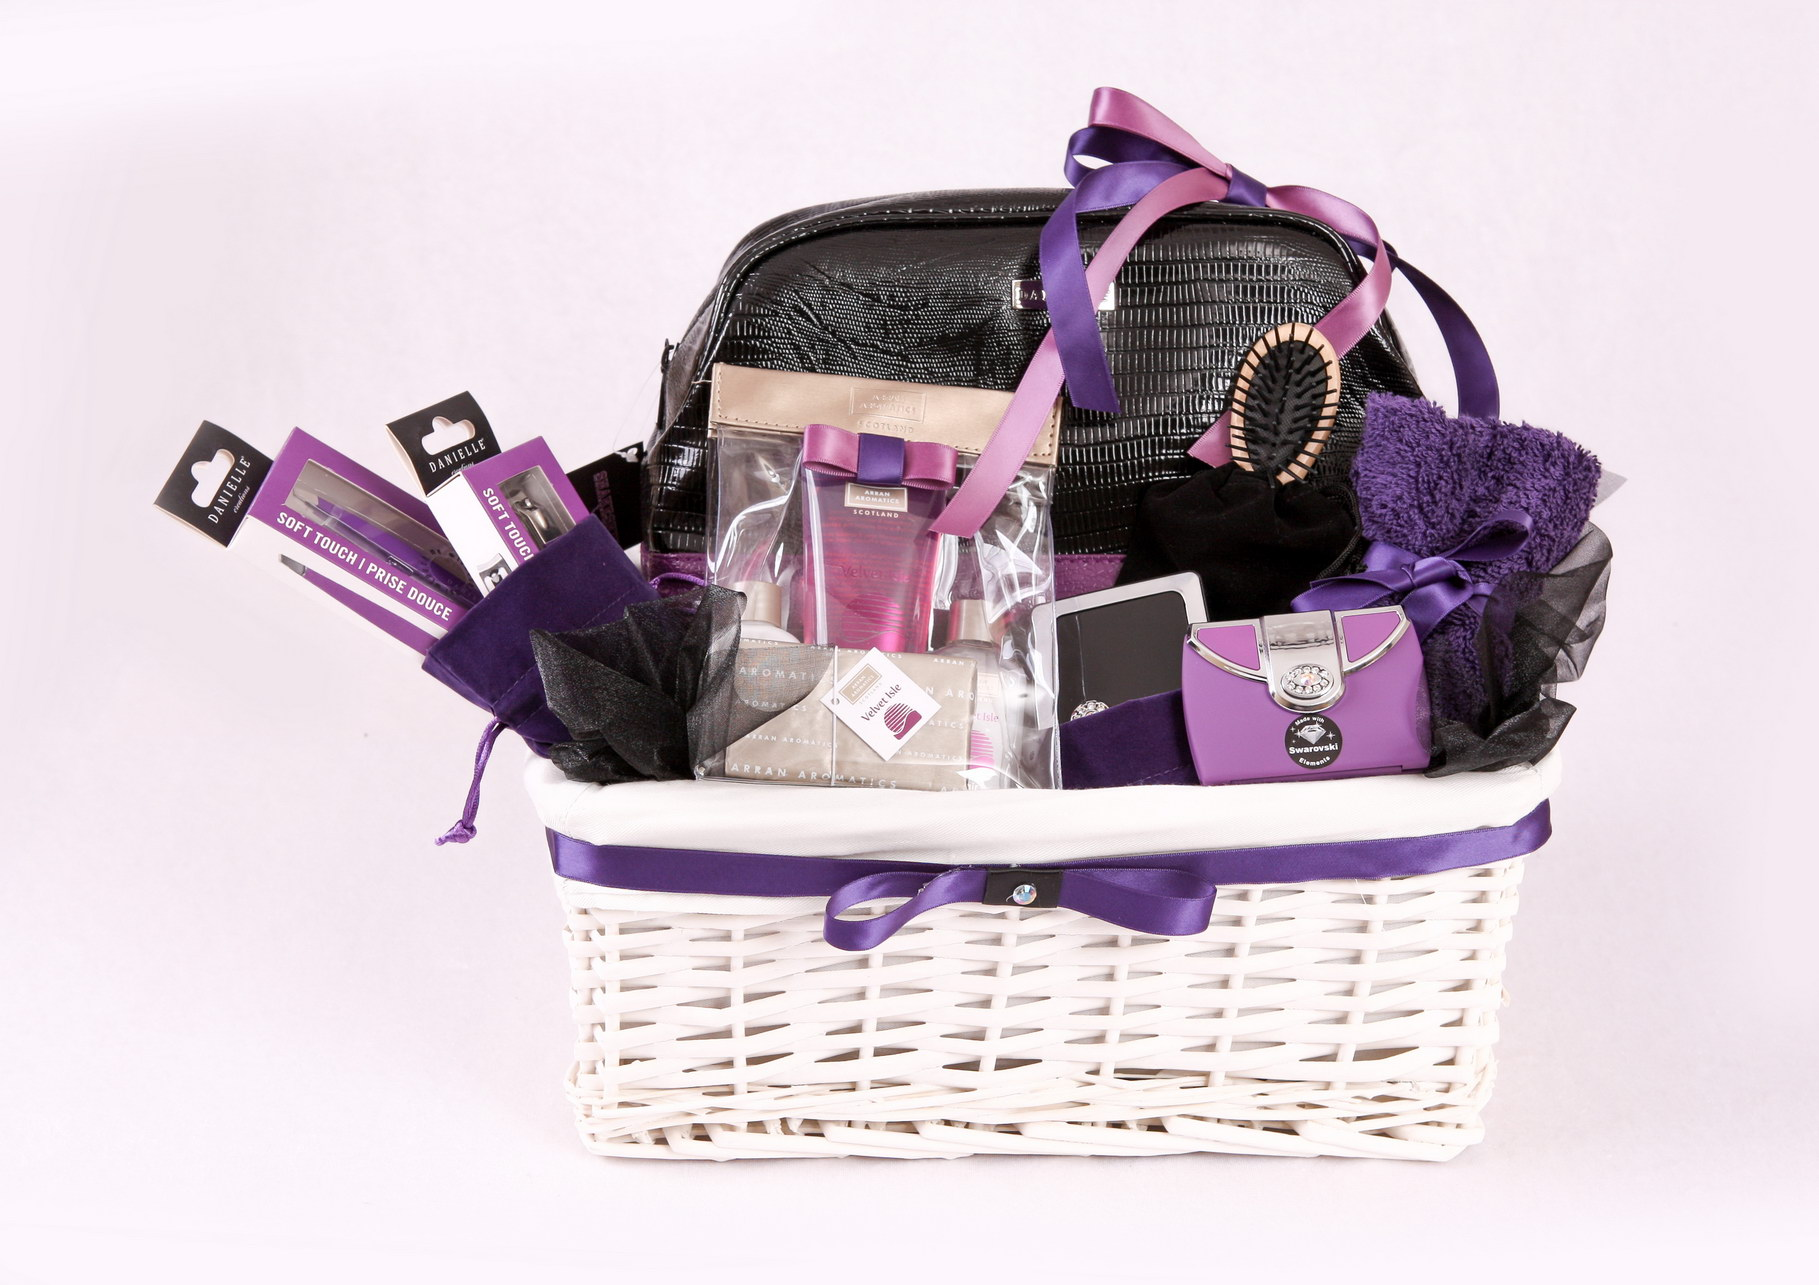 LUXURY PURPLE TOILETRY GIFT SET